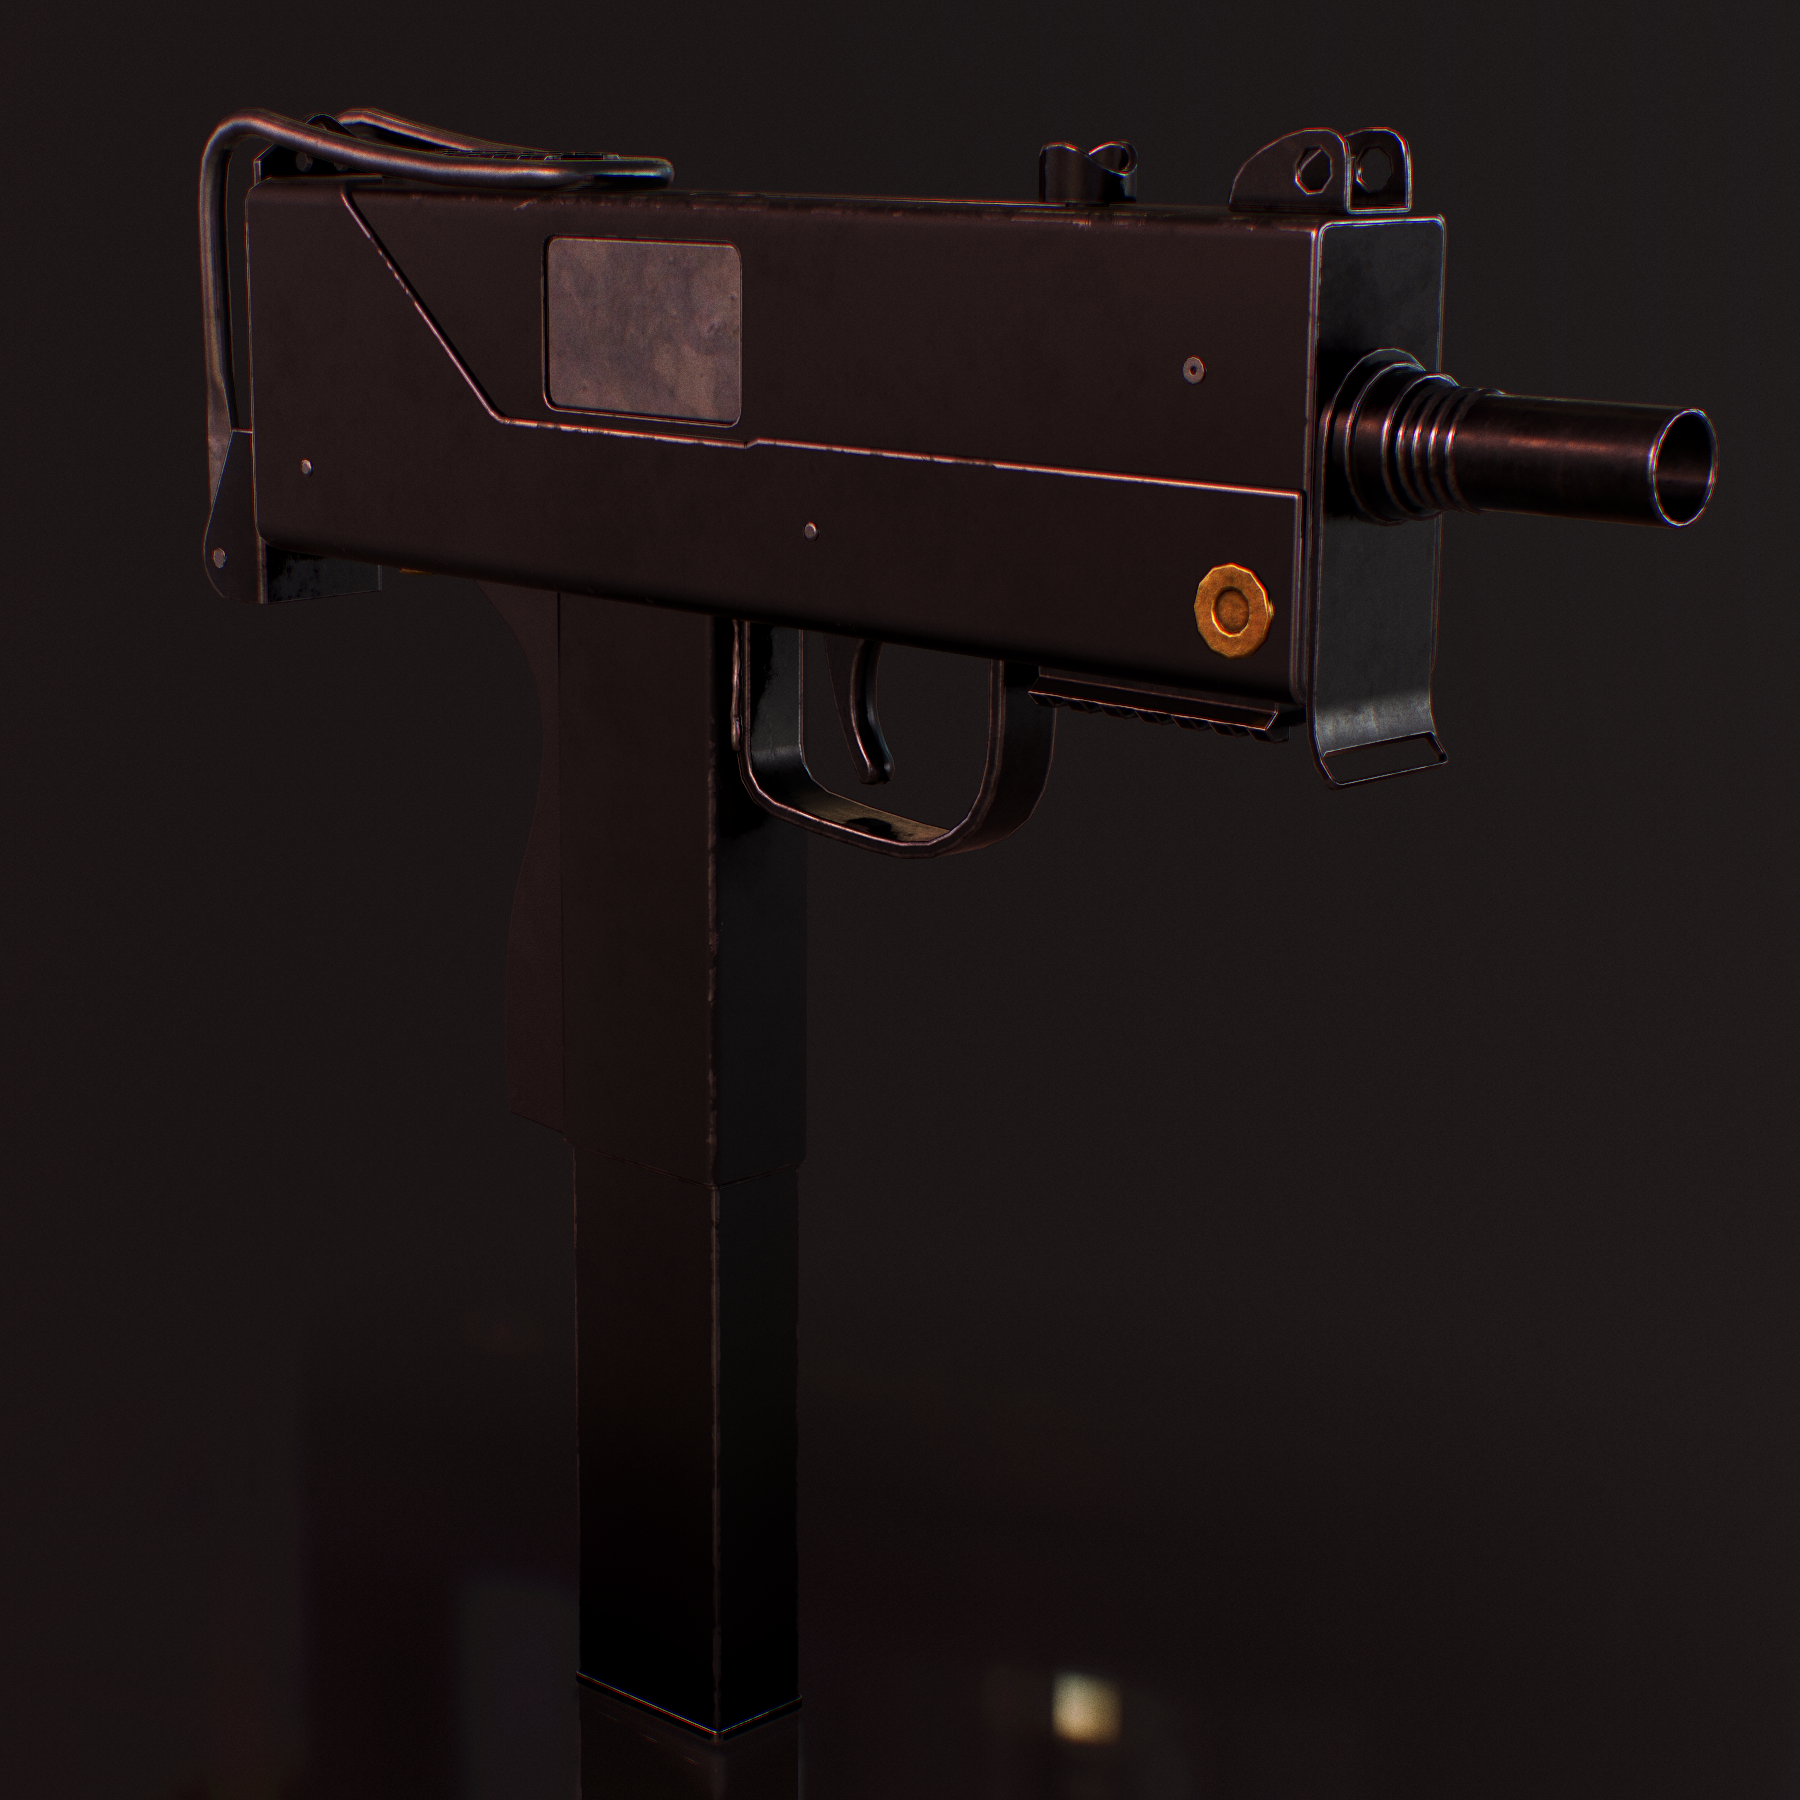 Mac 10 Sub-machine Gun